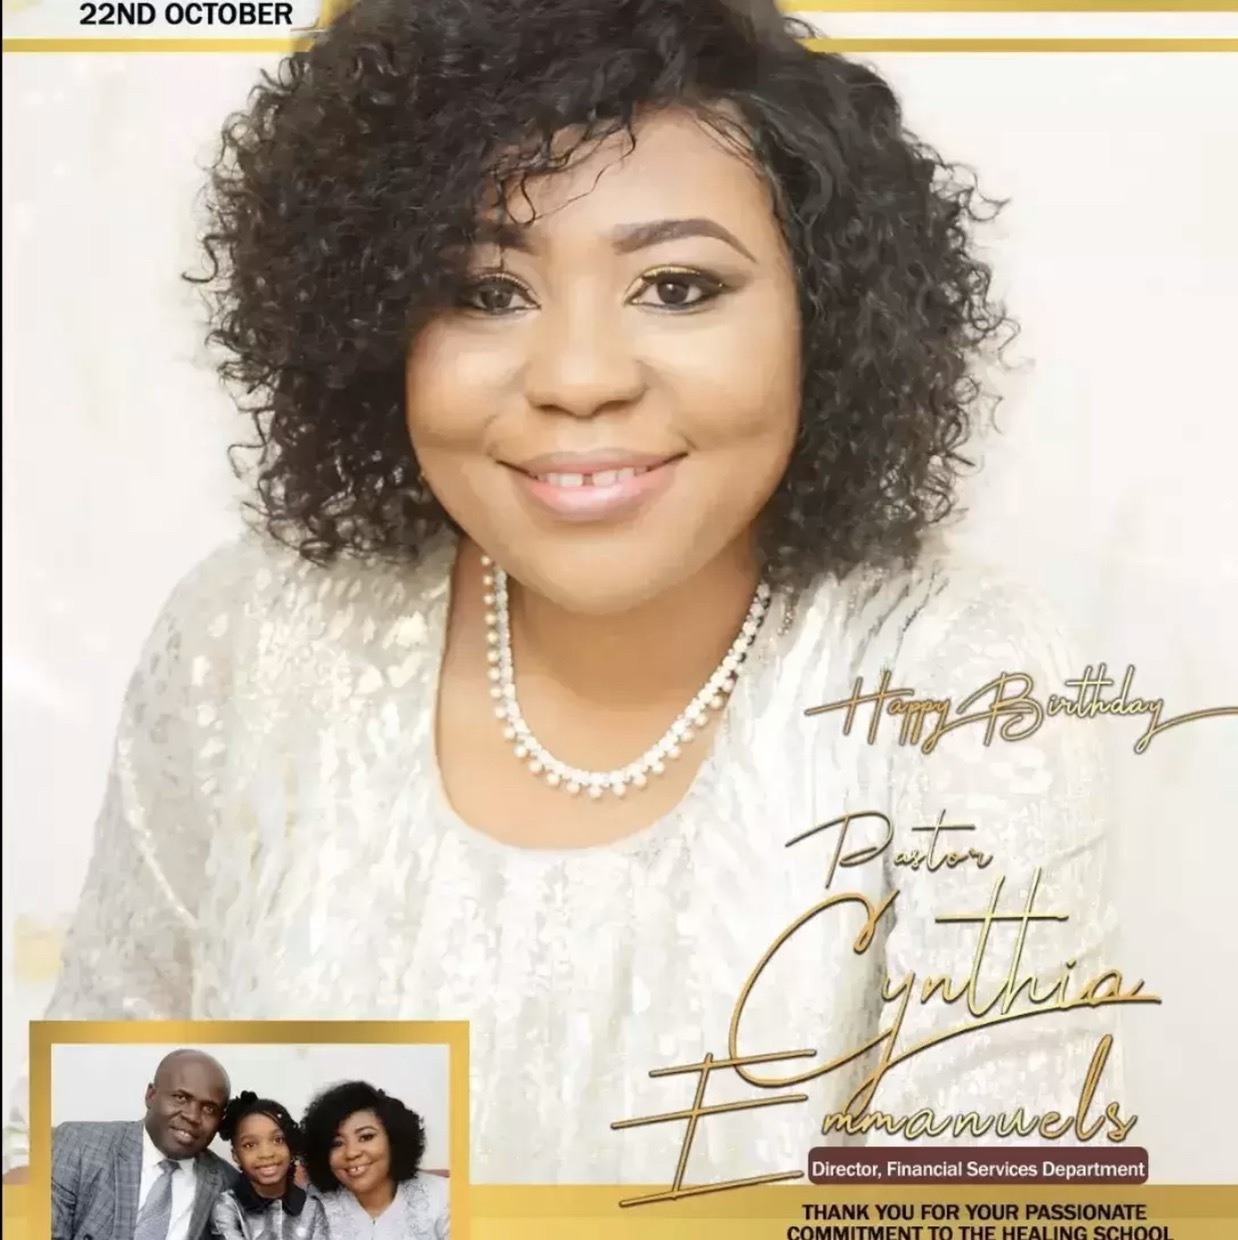 Happy birthday Pastor Cynthia, we